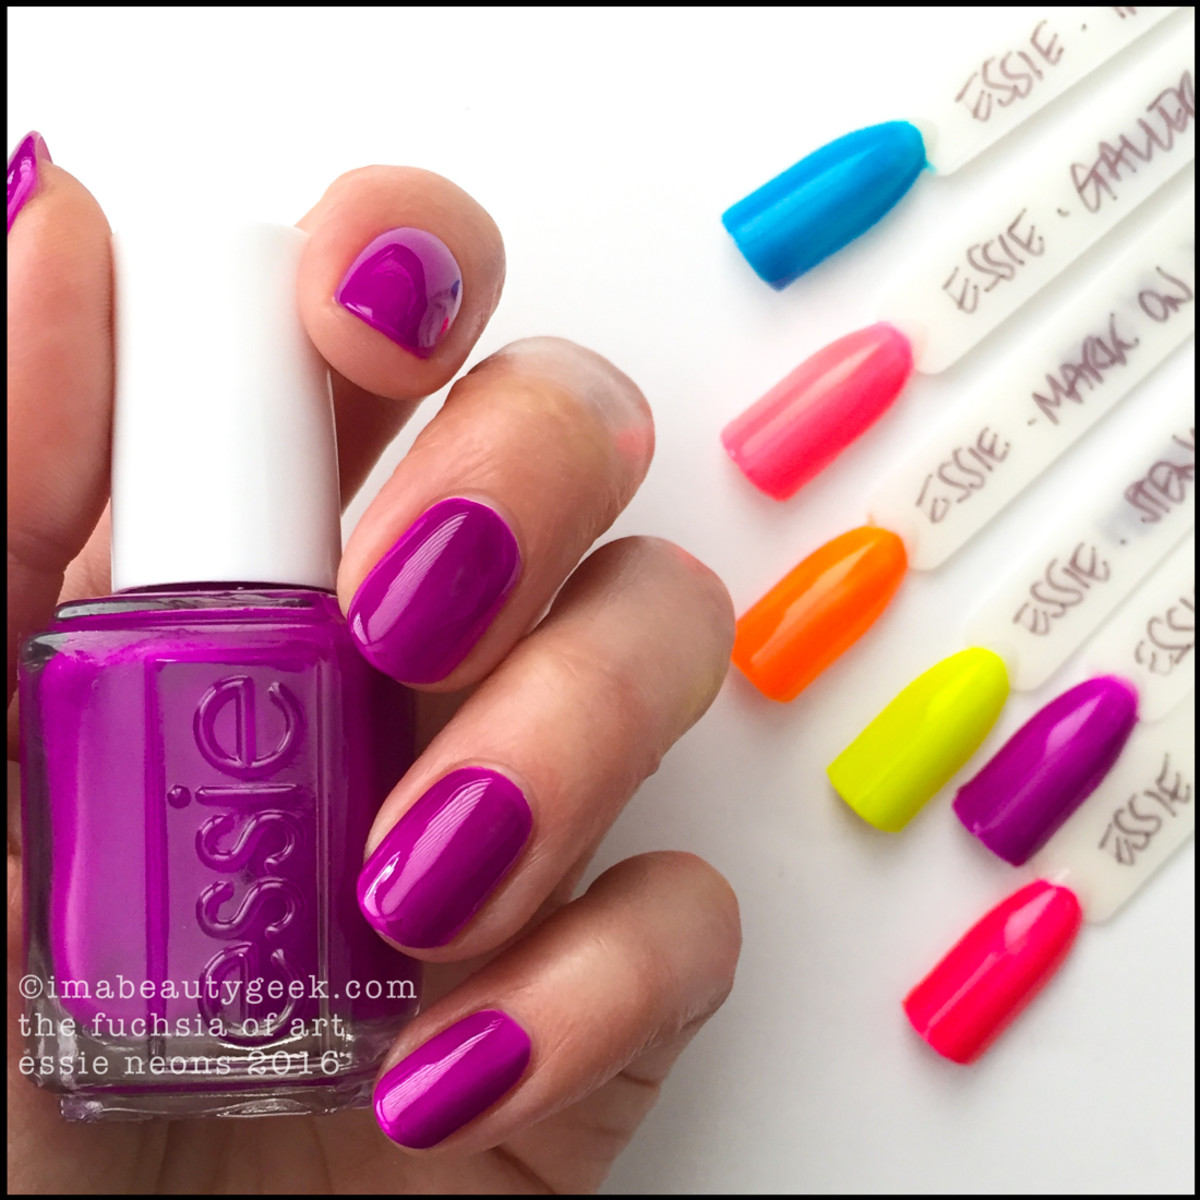 Essie The Fuchsia of Art_Essie Neons 2016 Collection Swatches Review